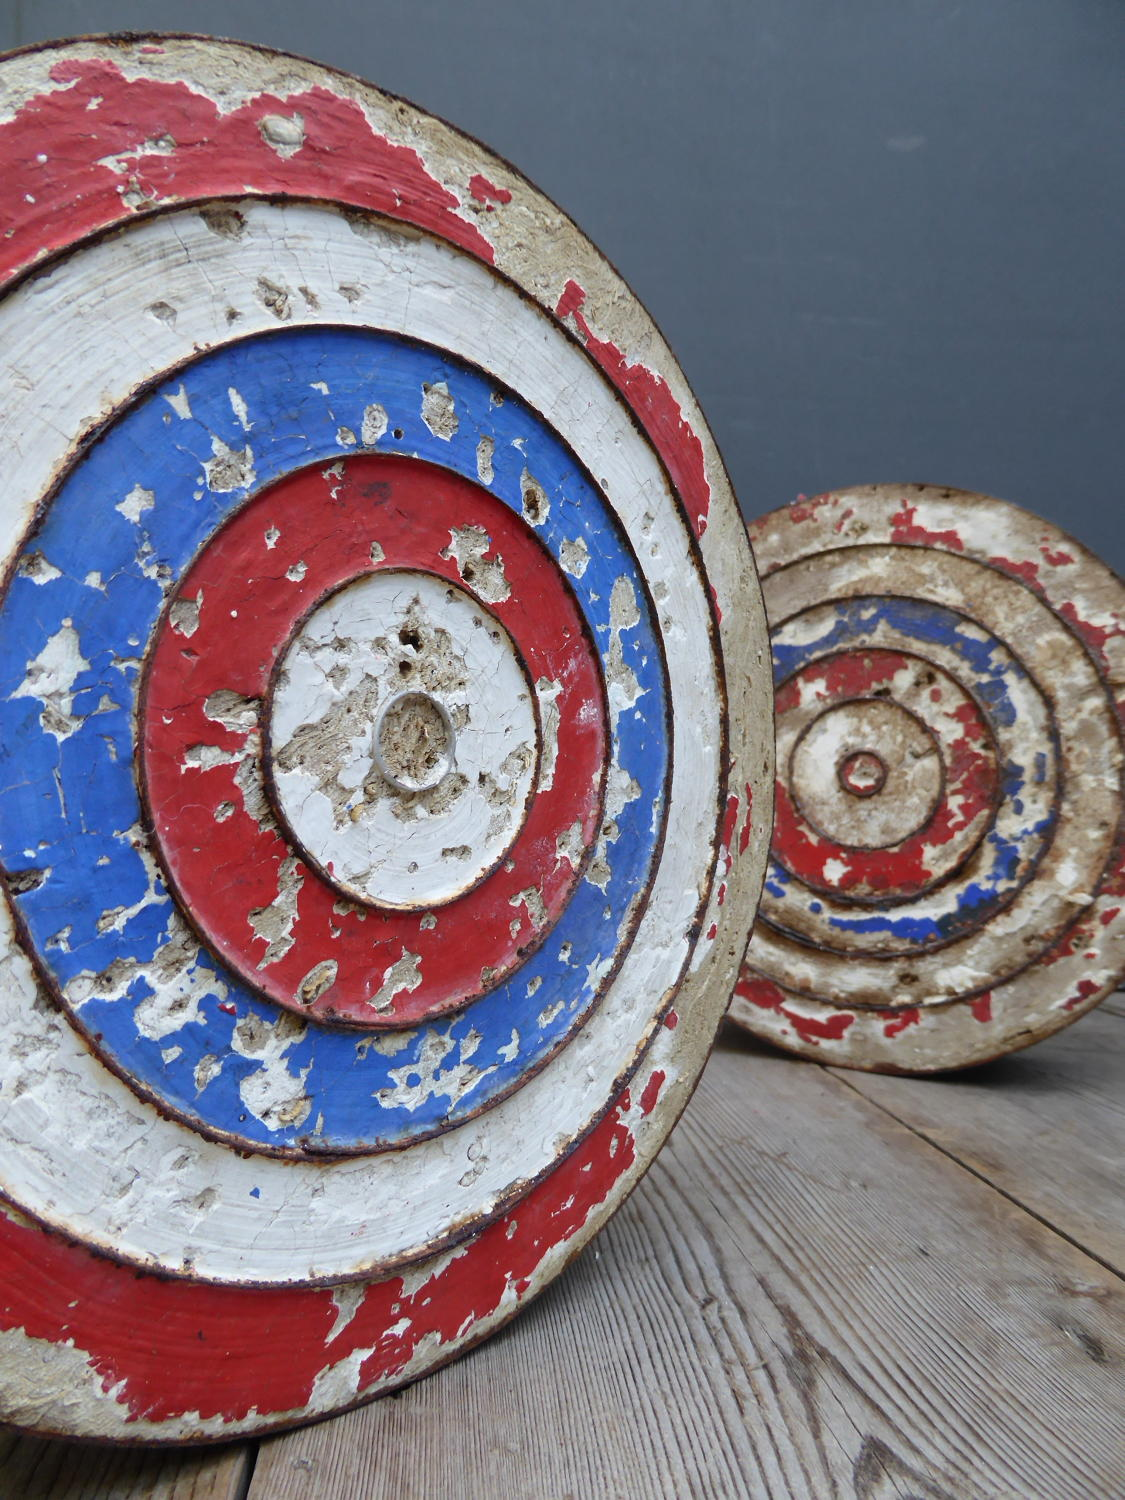 Fairground Dart Boards